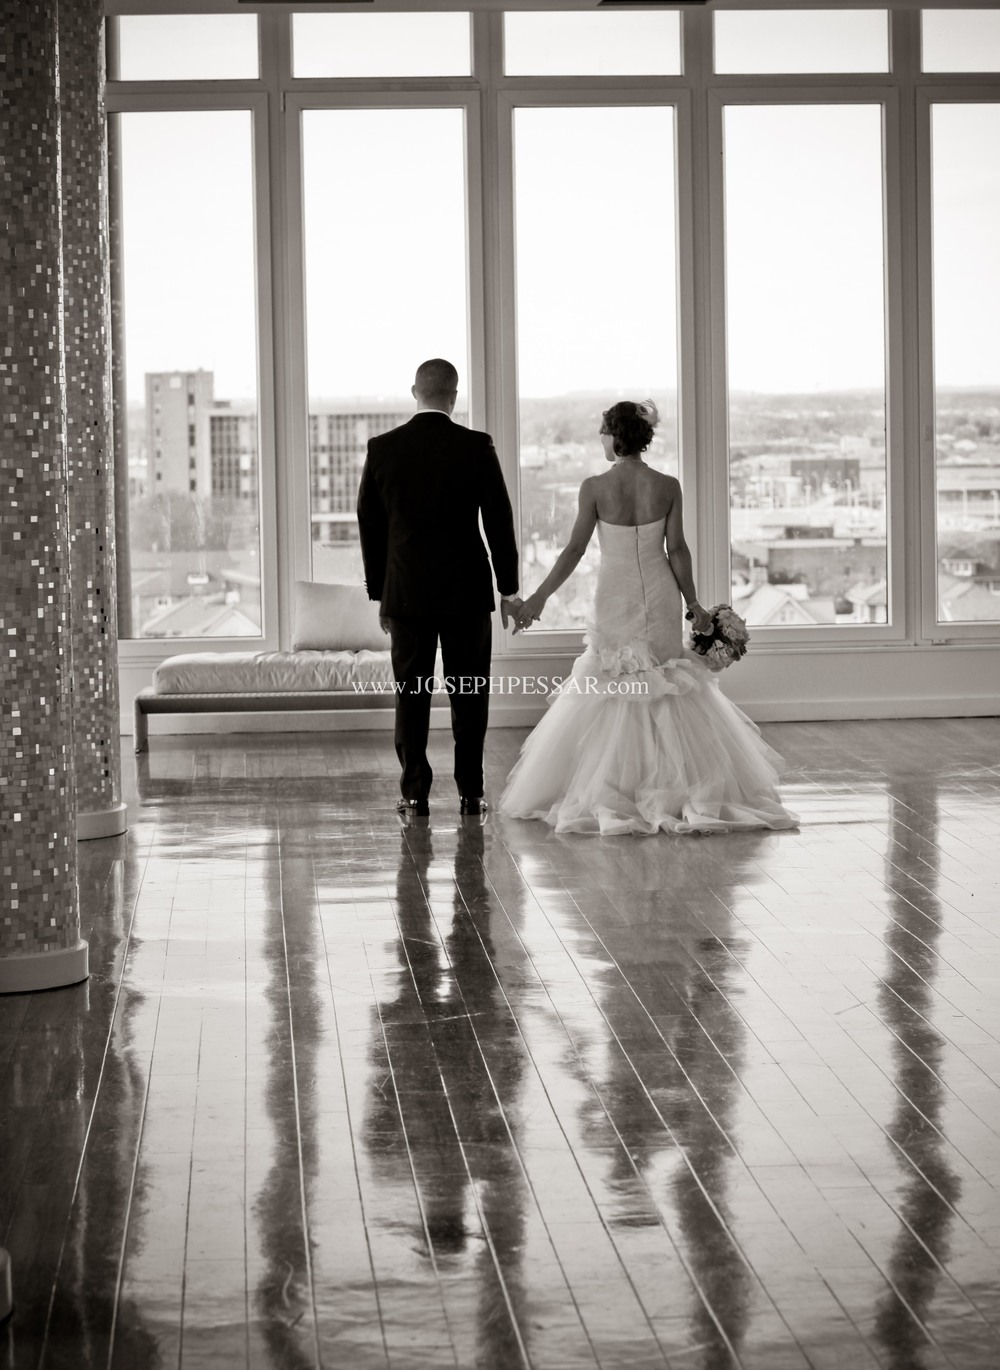 nyc_wedding_photographer0019.jpg